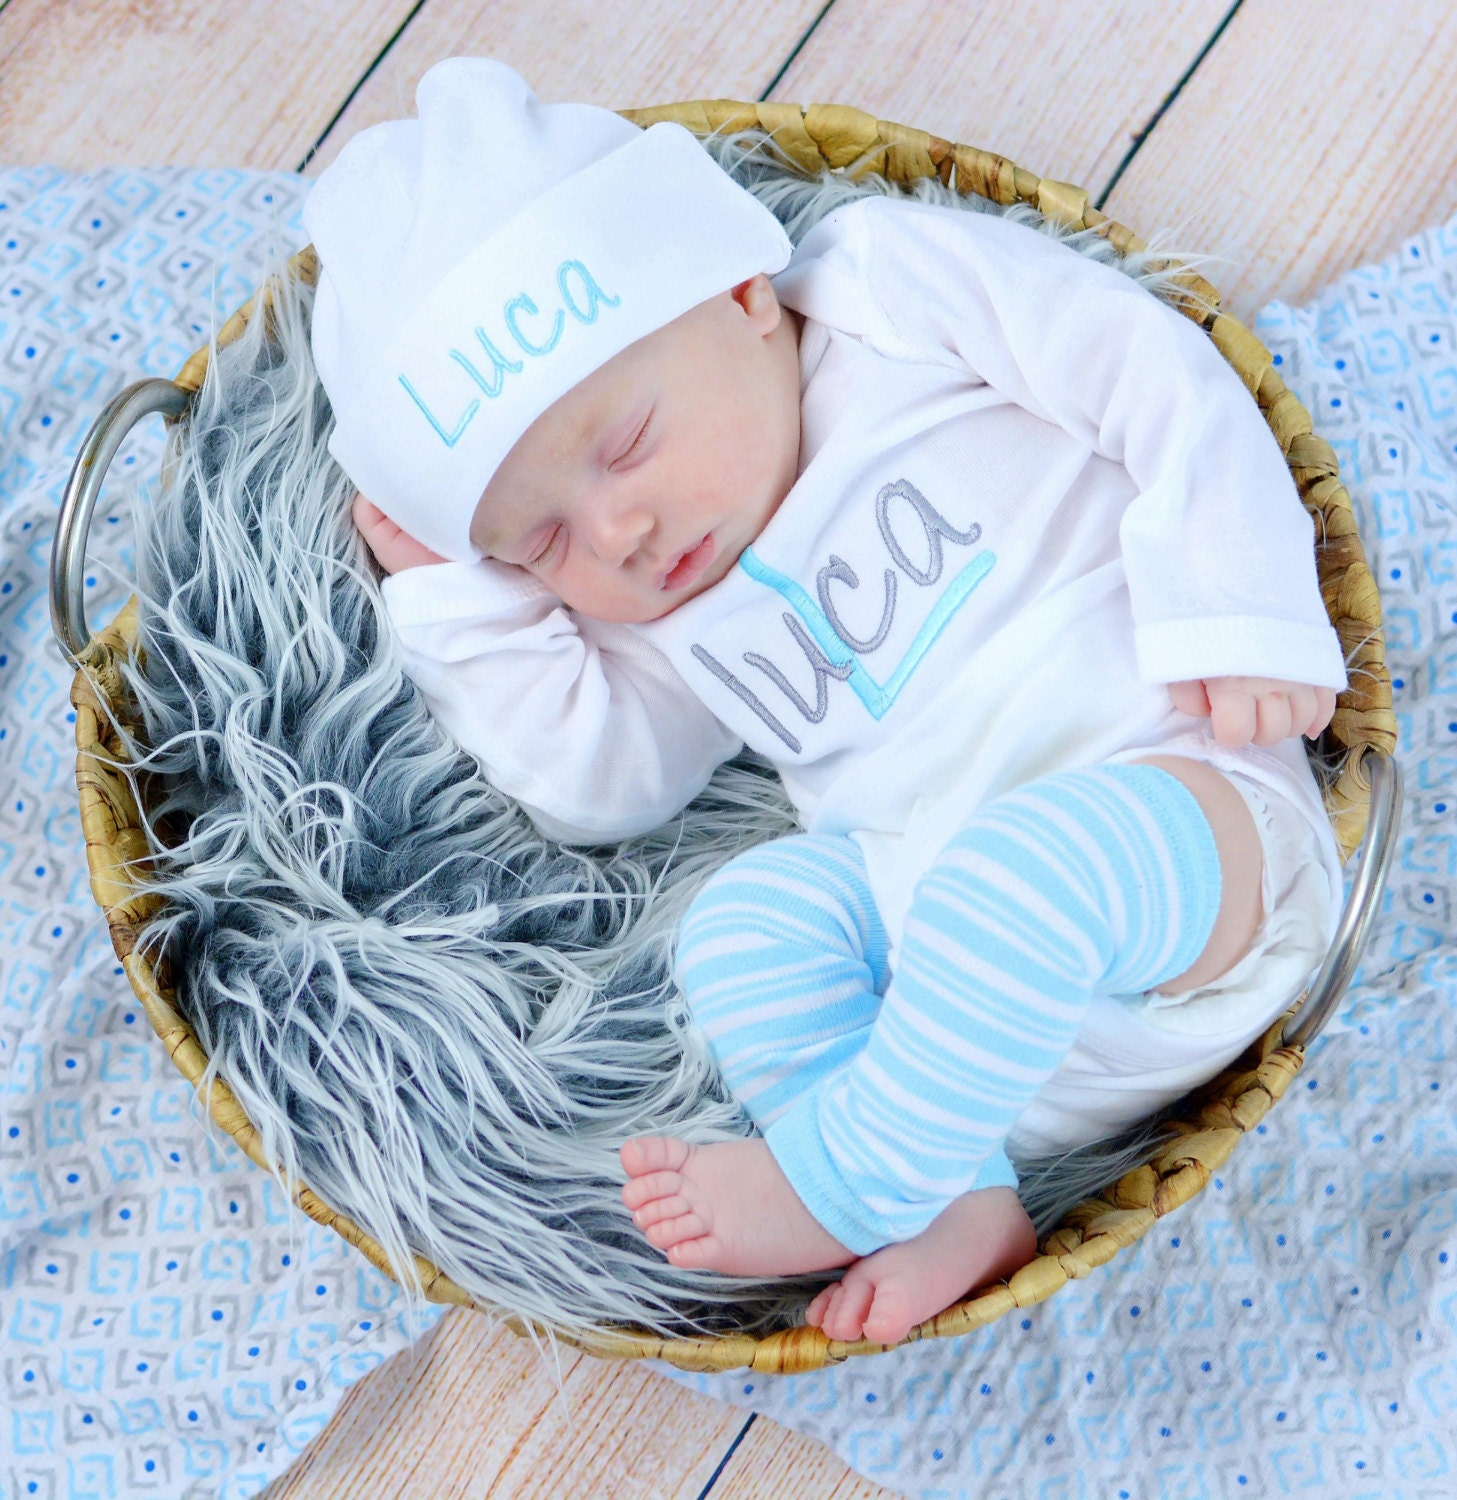 Baby Gifts: Free Shipping on orders over $45 at metools.ml - Your Online Baby Gifts Store! Overstock uses cookies to ensure you get the best experience on our site. If you continue on our site, you consent to the use of such cookies. Firemen's Best Friend Dalmatian Puppy Baby Boy Gift Basket. Quick View $ 49 - $